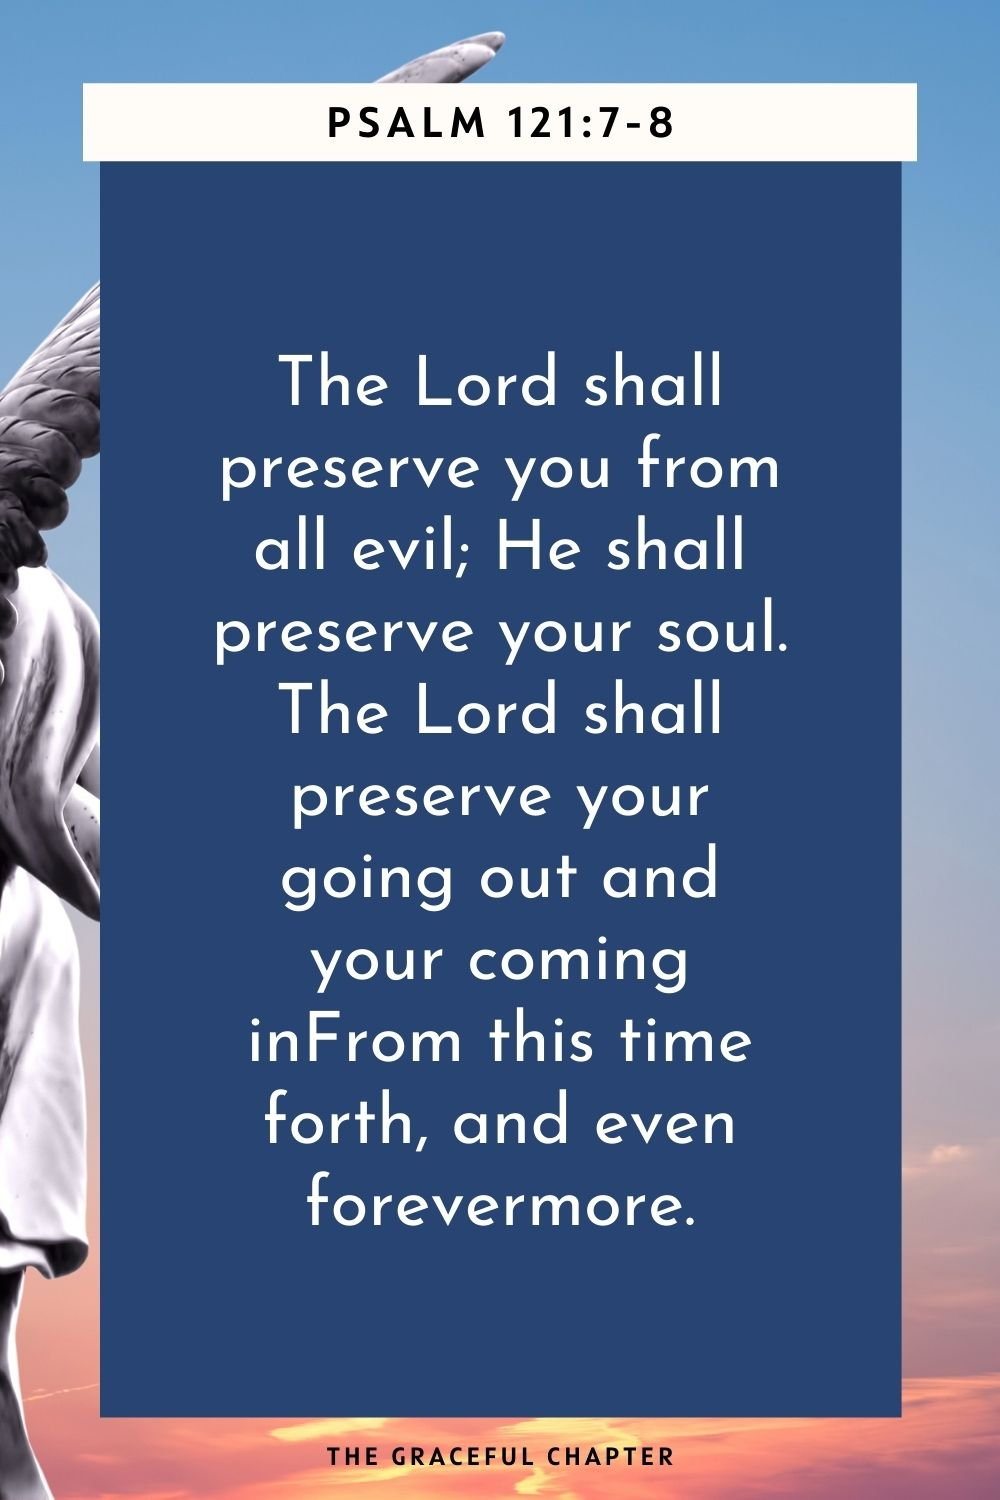 The Lord shall preserve you from all evil; He shall preserve your soul. The Lord shall preserve your going out and your coming in From this time forth, and even forevermore. Psalm 121:7-8